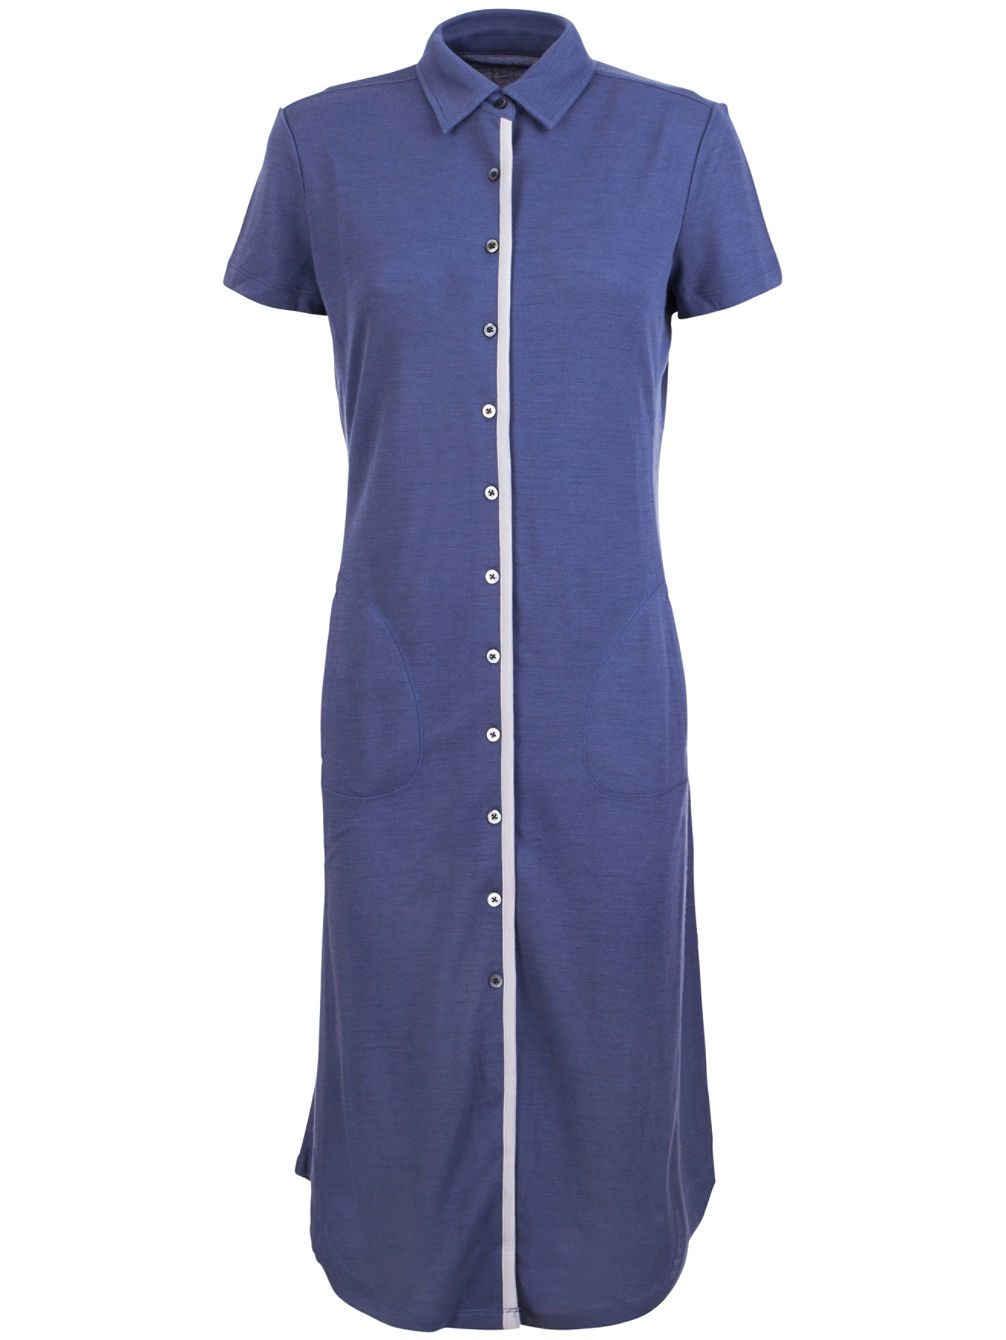 Waterfront Piquet Dress